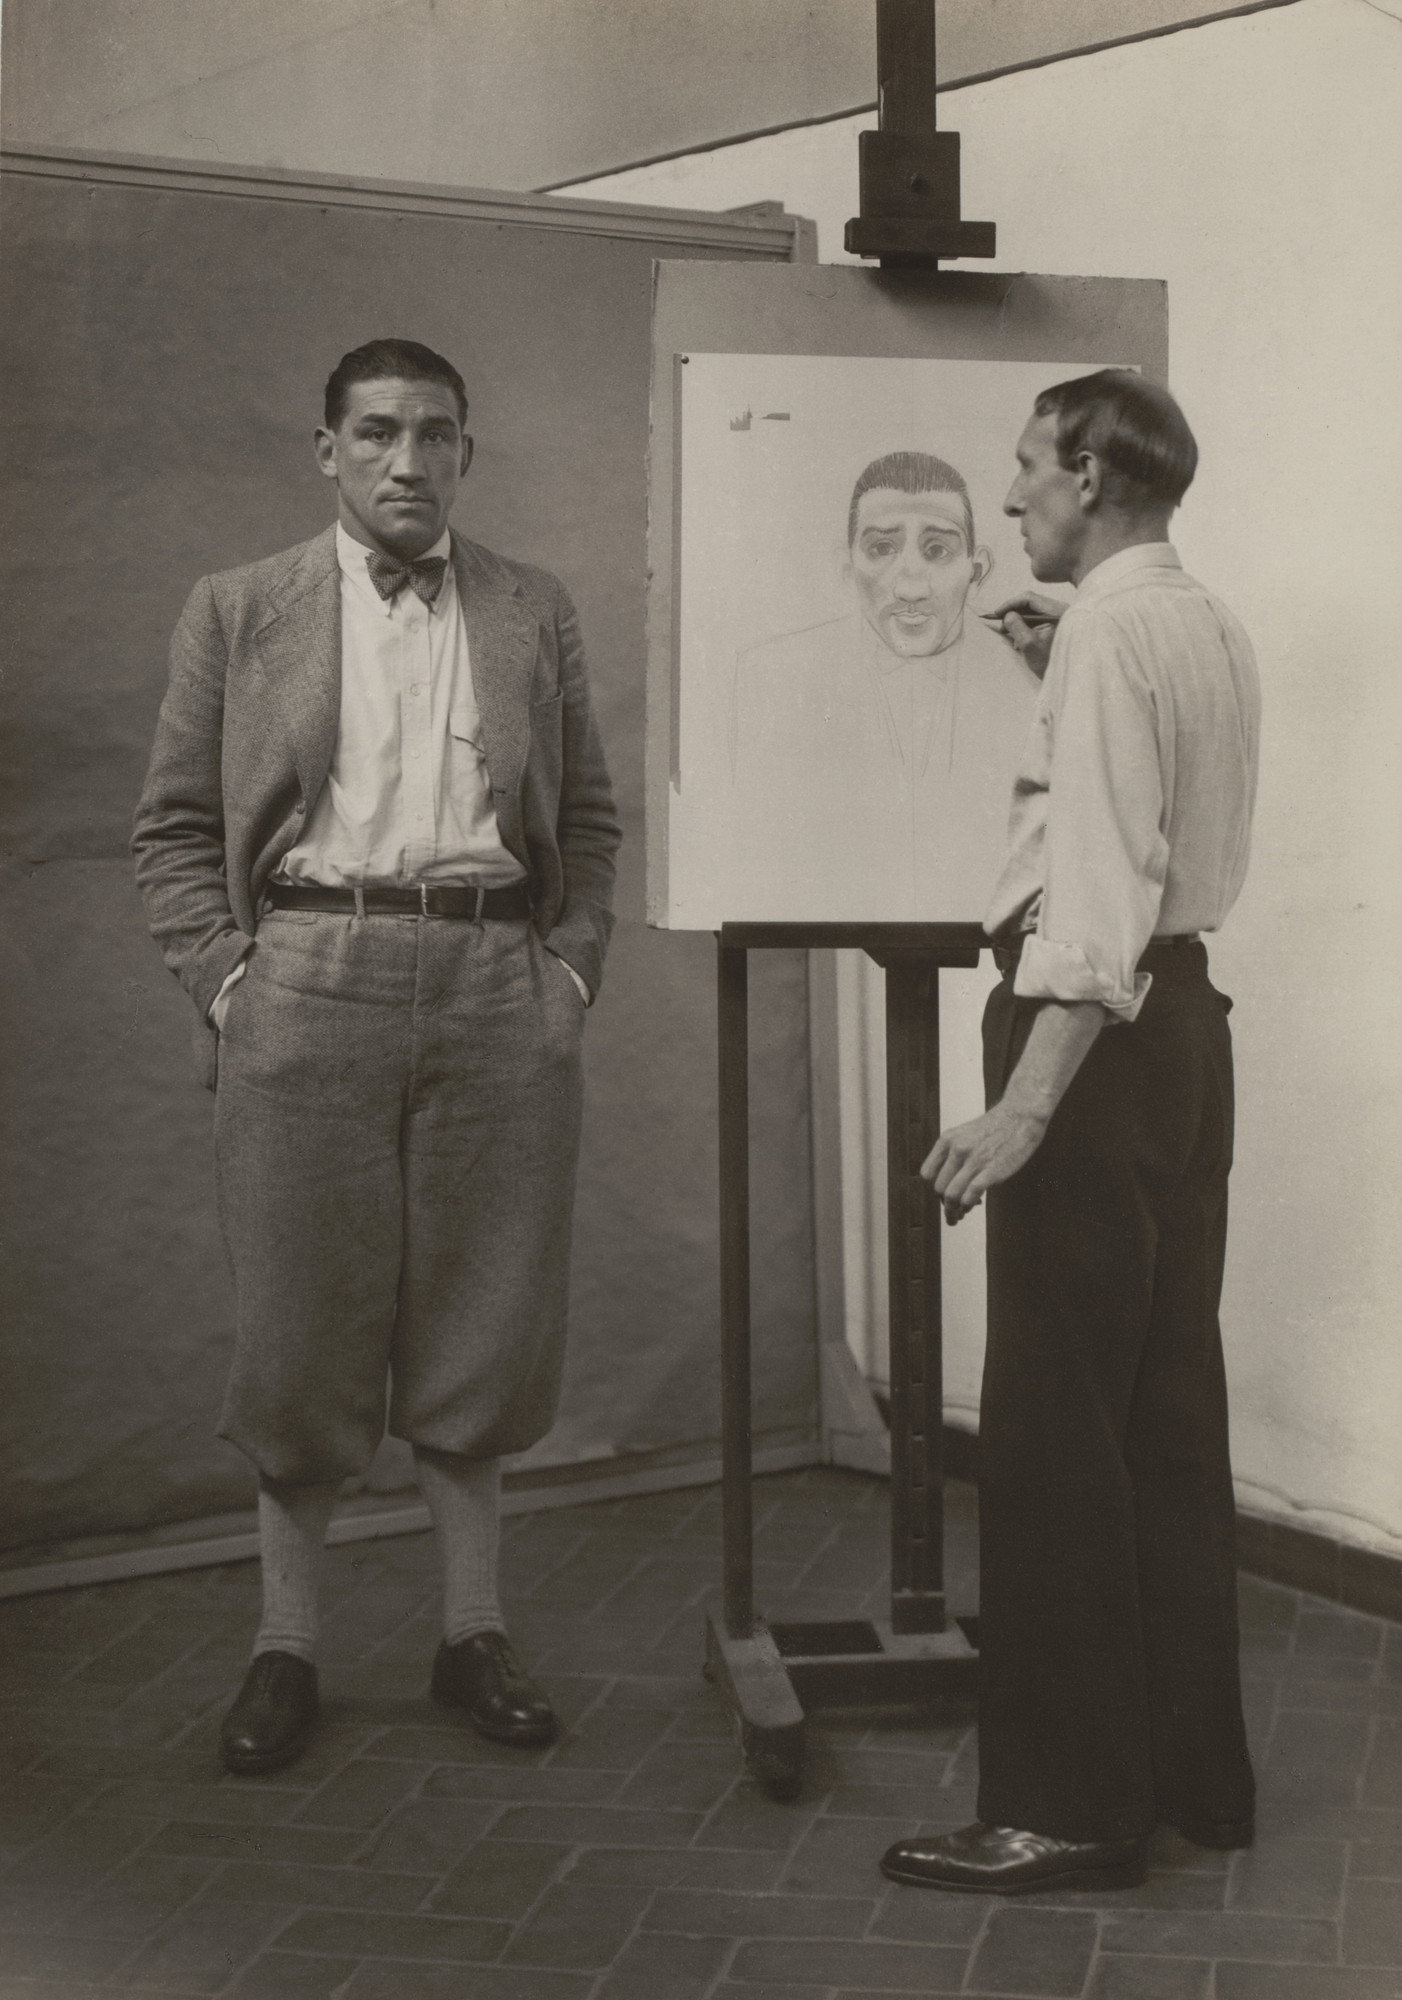 August Sander. The Painter Heinrich Hörle Drawing the Boxer Hein Domgören. 1927-31